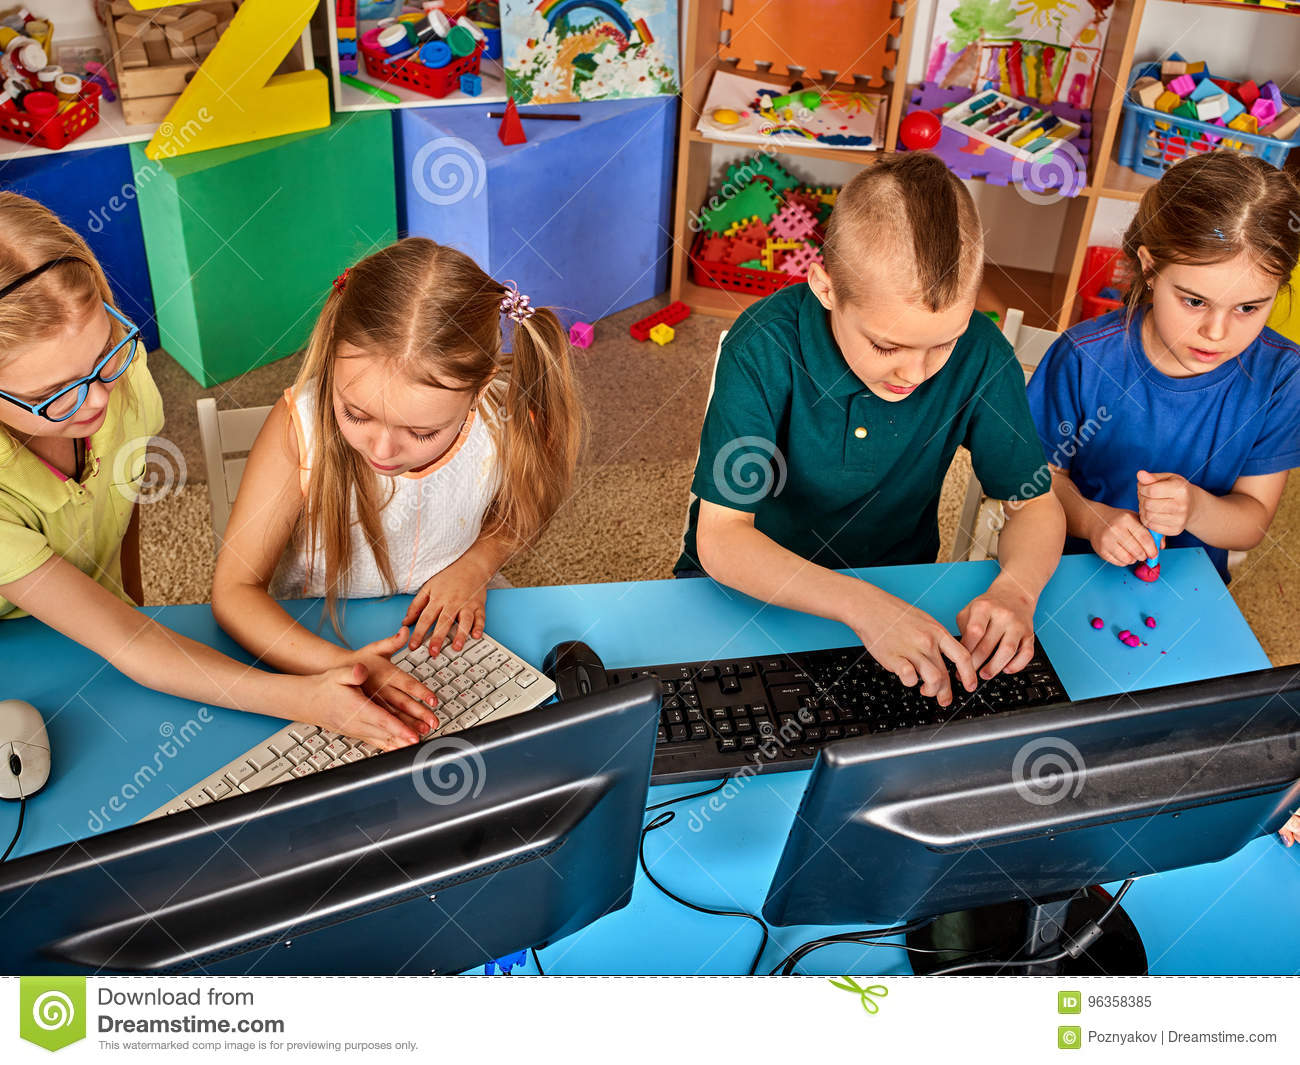 Download Children Computer Class Us For Education And Video Game. Stock Image - Image of monster, spend: 96358385